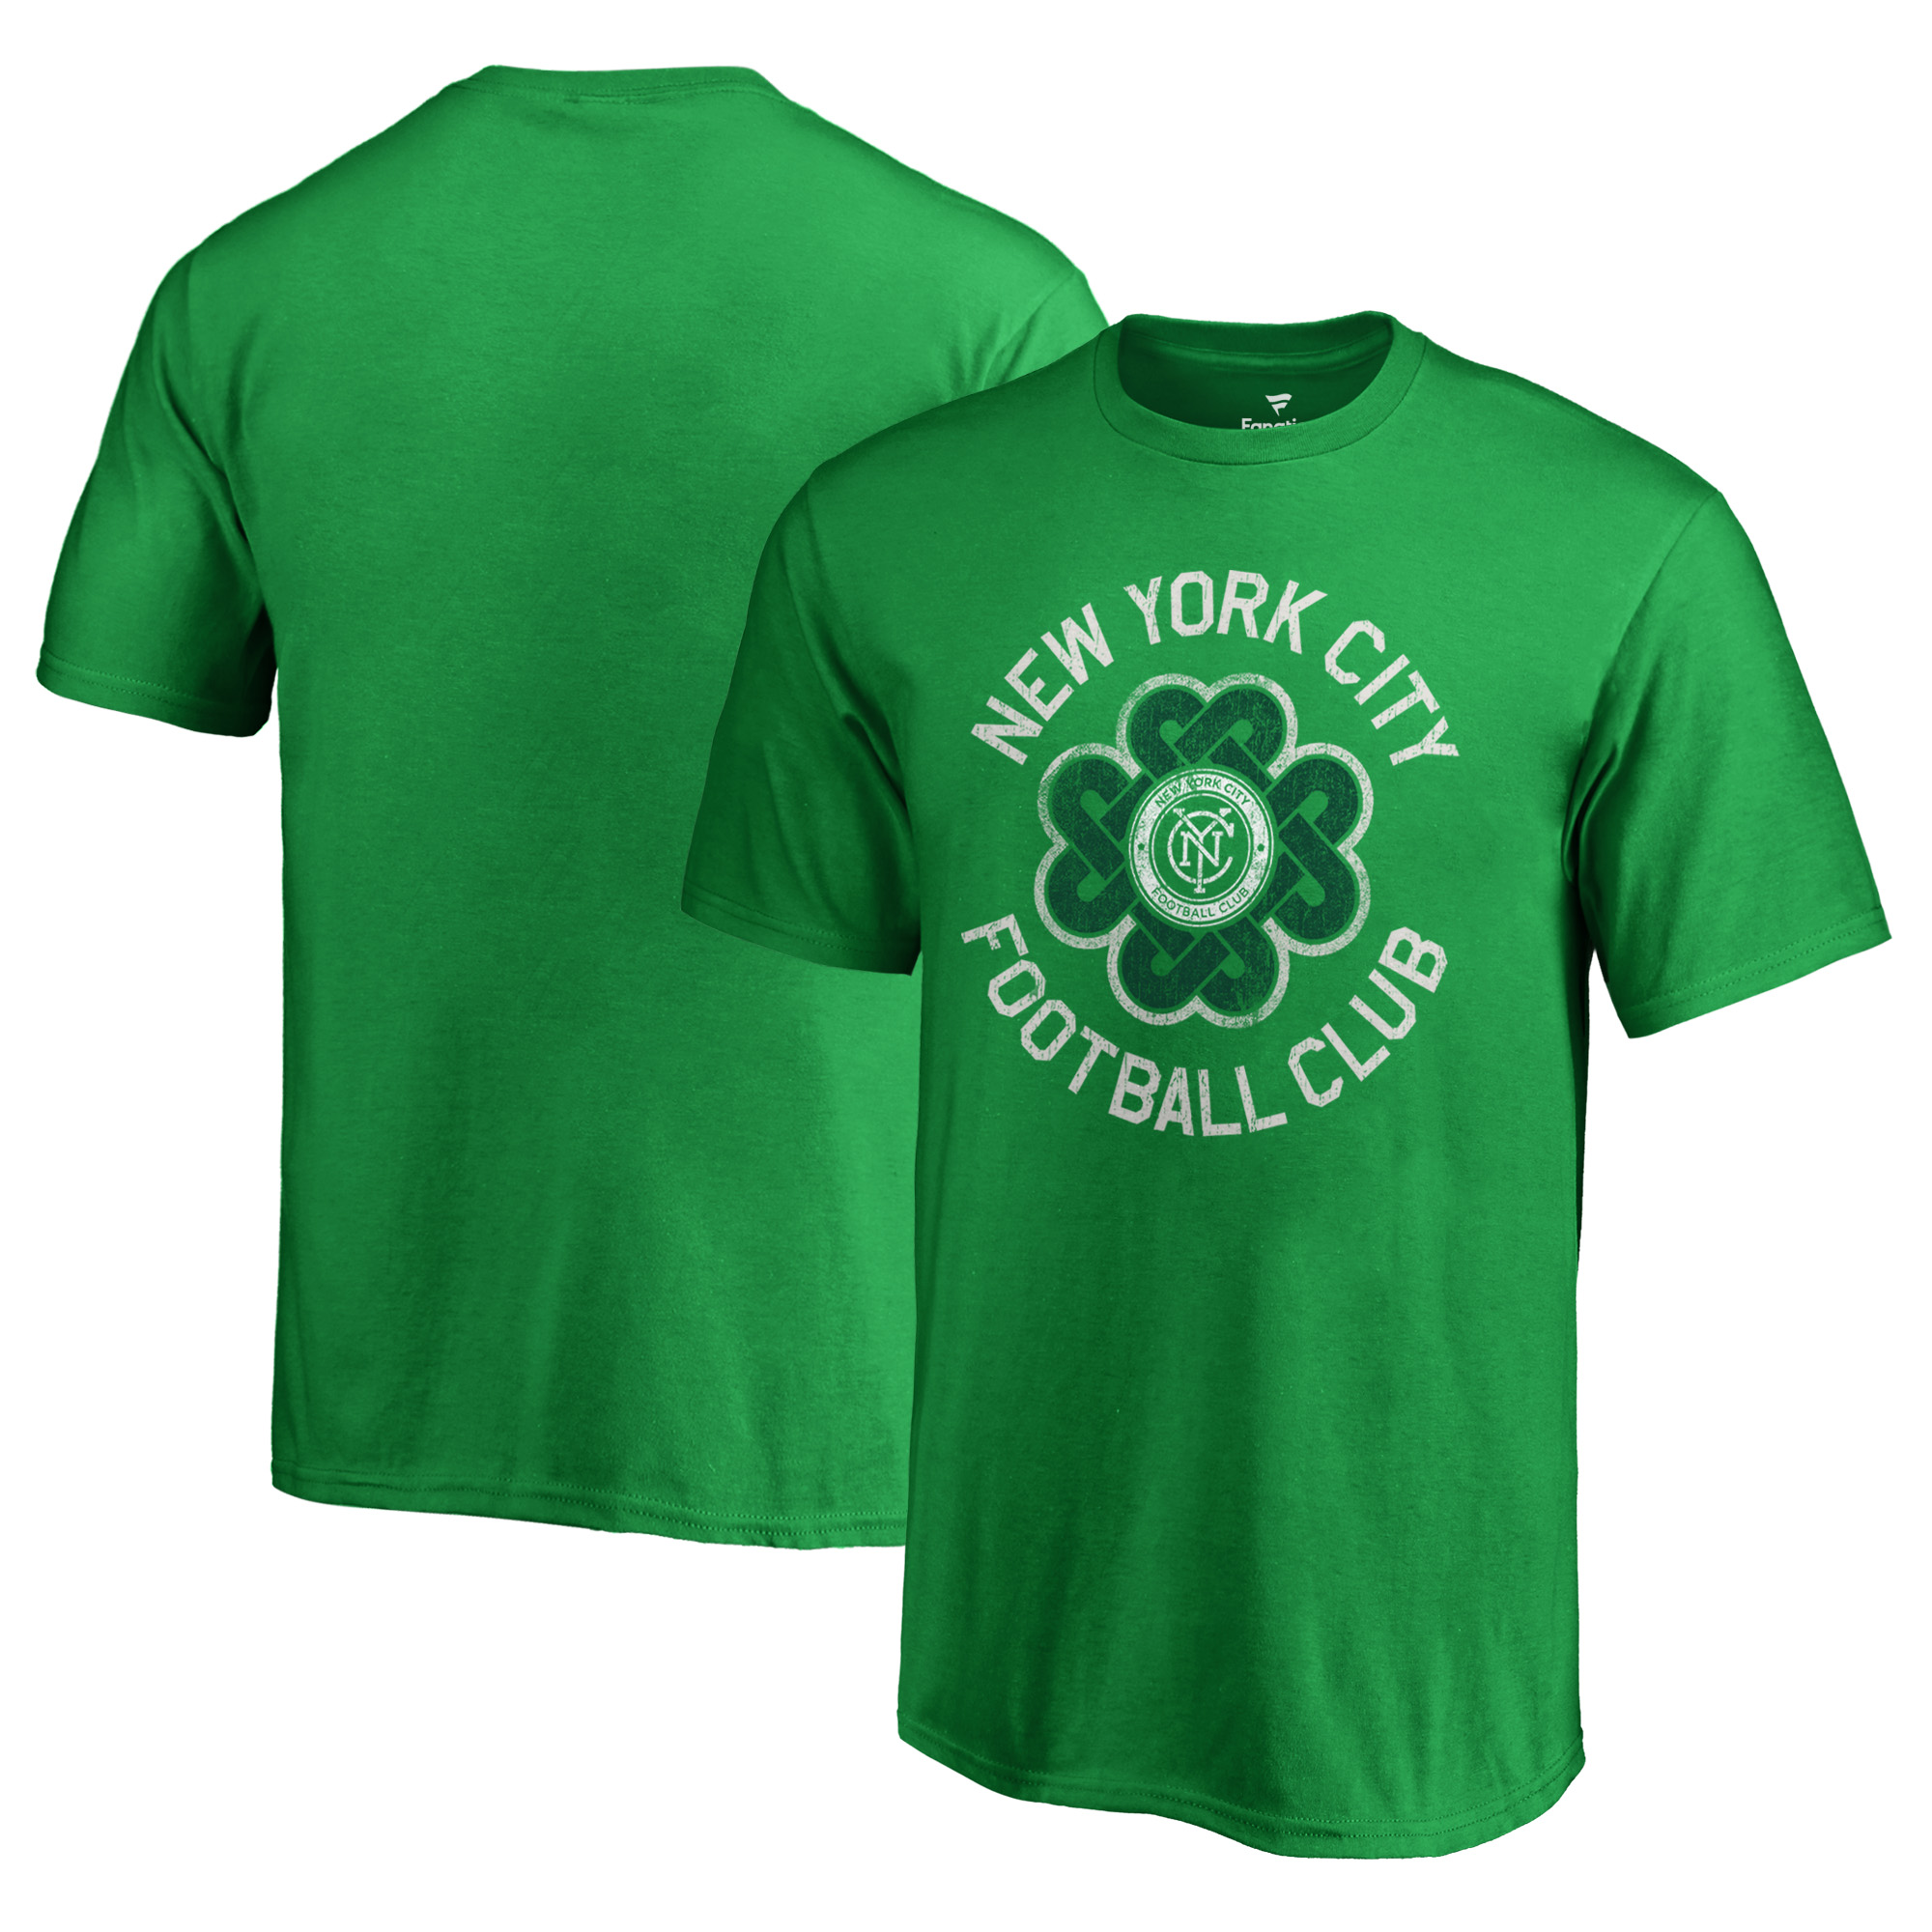 New York City FC Fanatics Branded Youth St. Patrick's Day Luck Tradition T-Shirt - Kelly Green